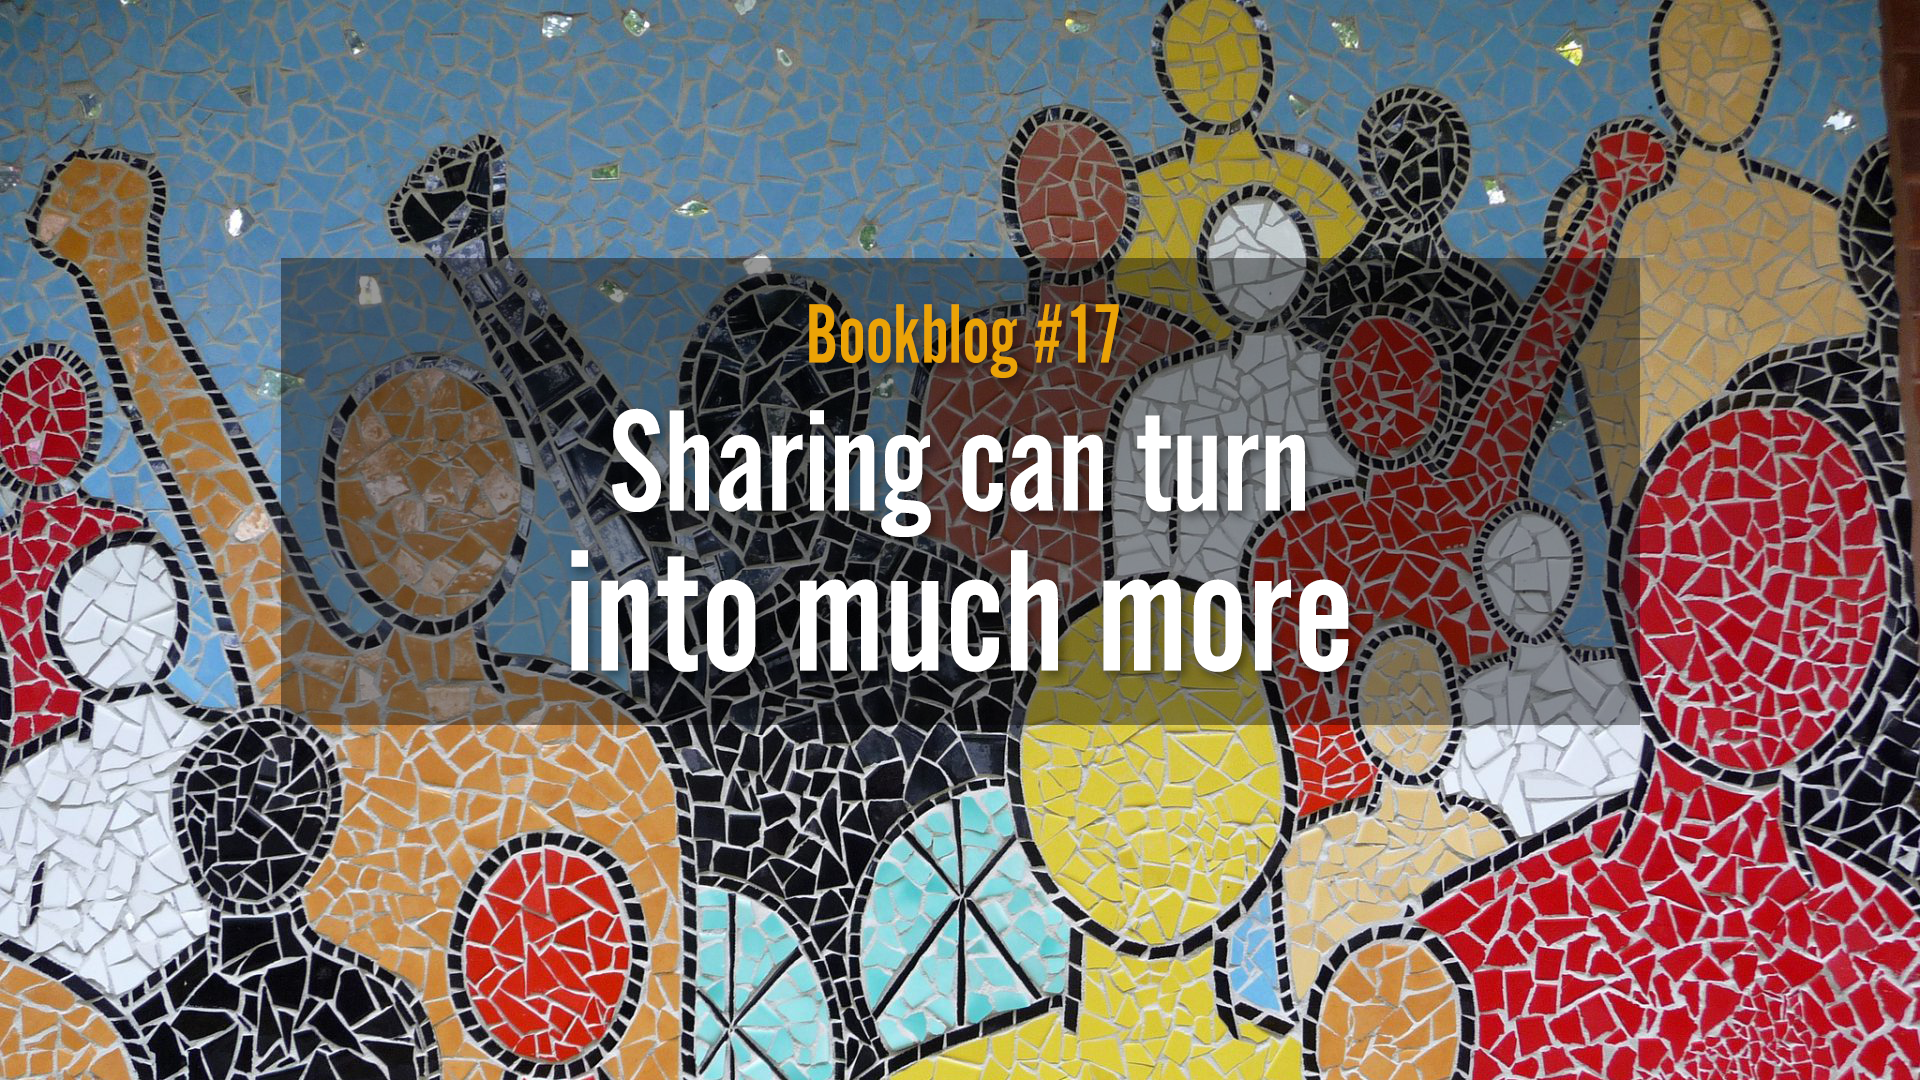 Sharing can turn into much more